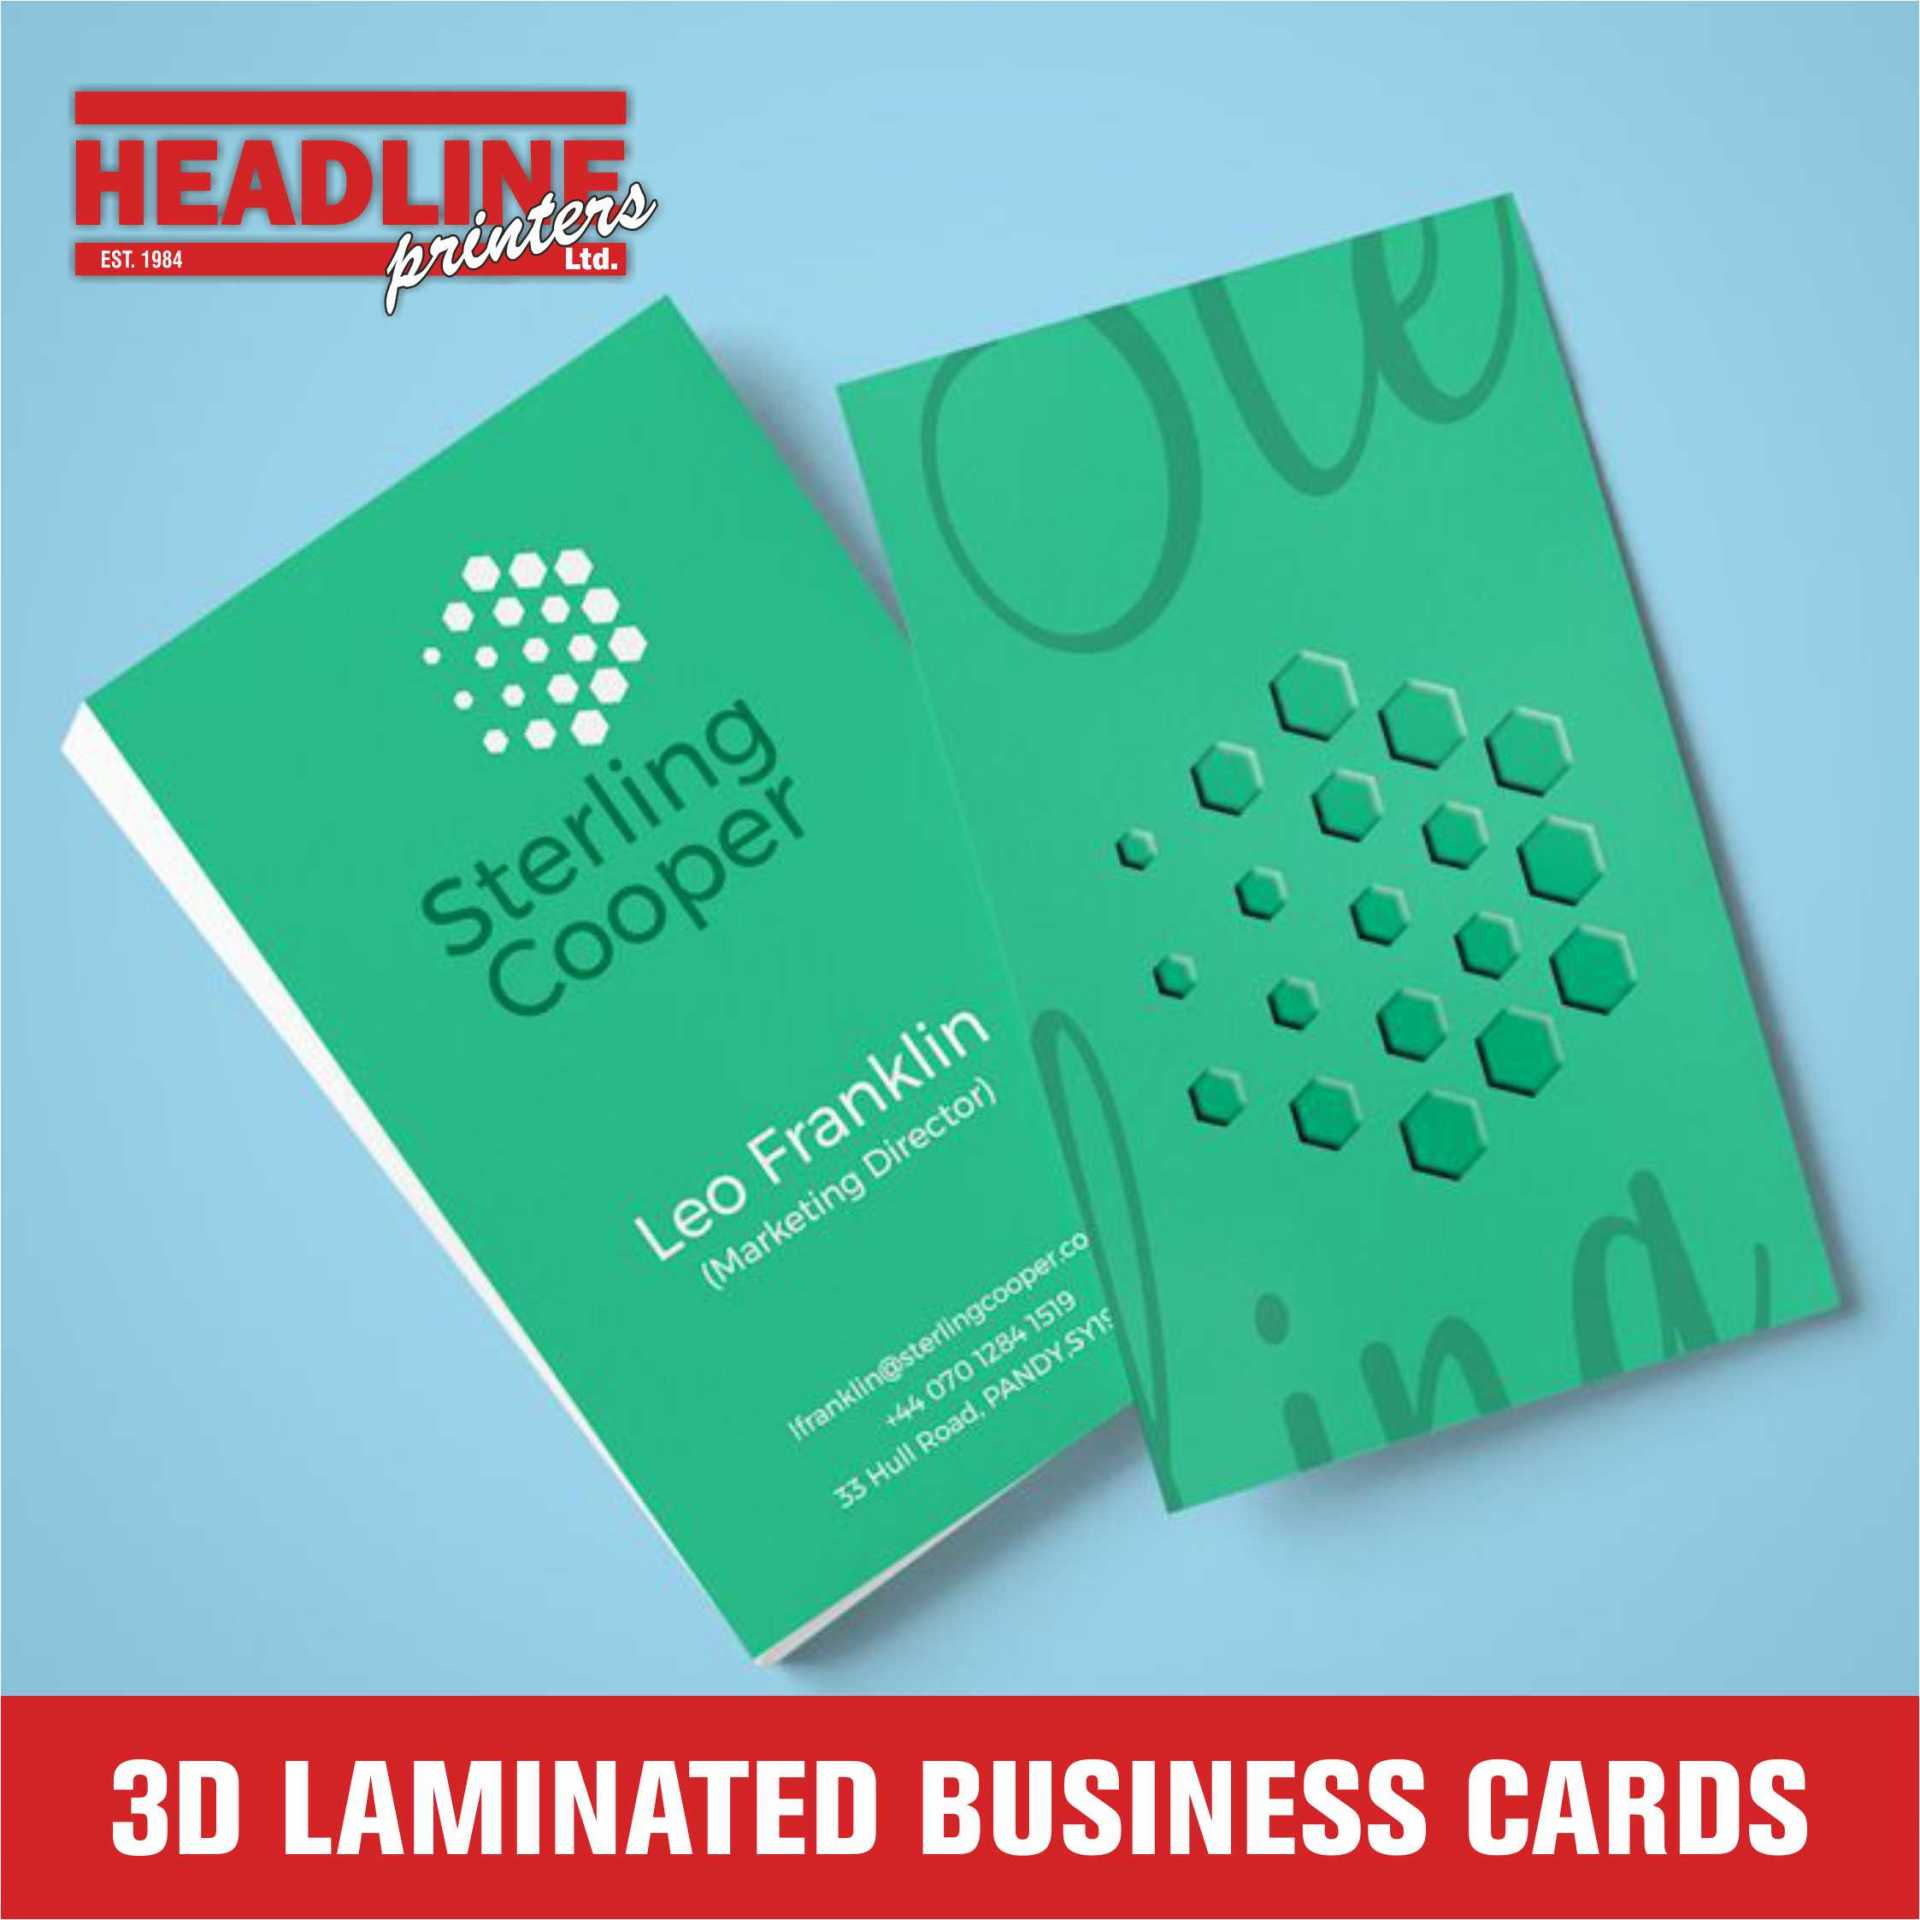 3D+Laminated+Business+Cards-1920w.jpg